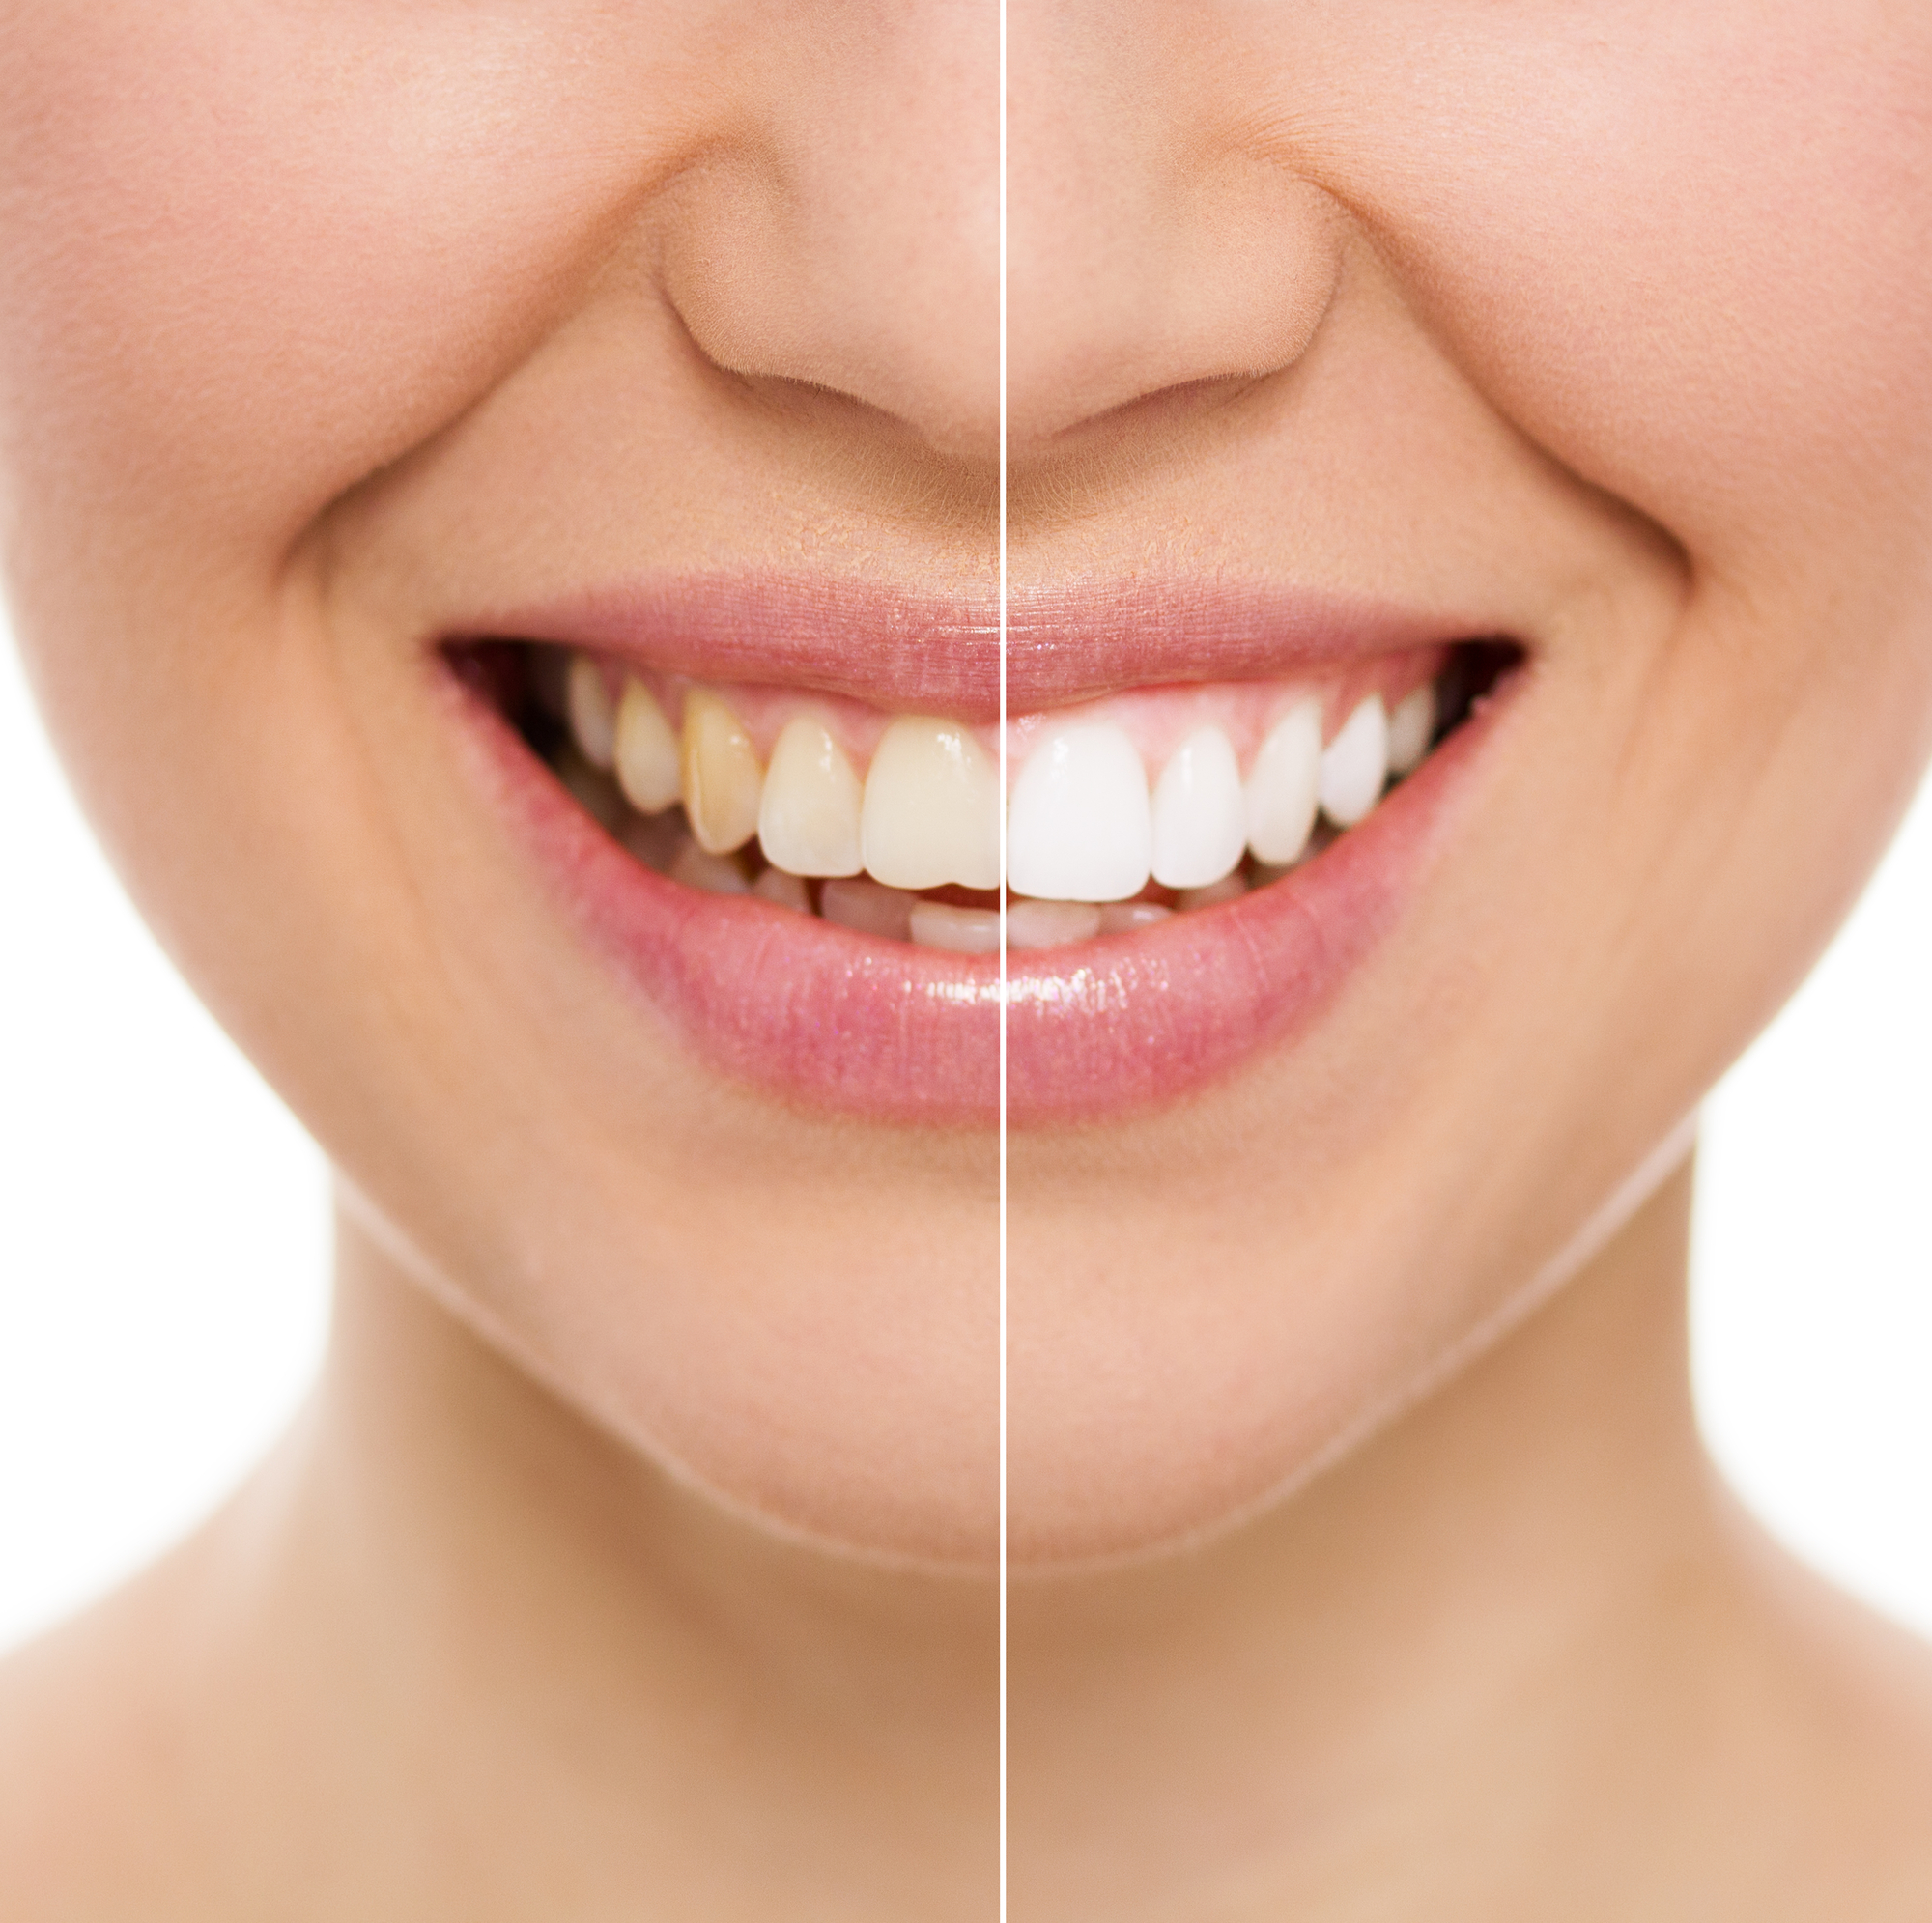 Laser Teeth Whitening Vs Over The Counter Bleaching Austin Laser